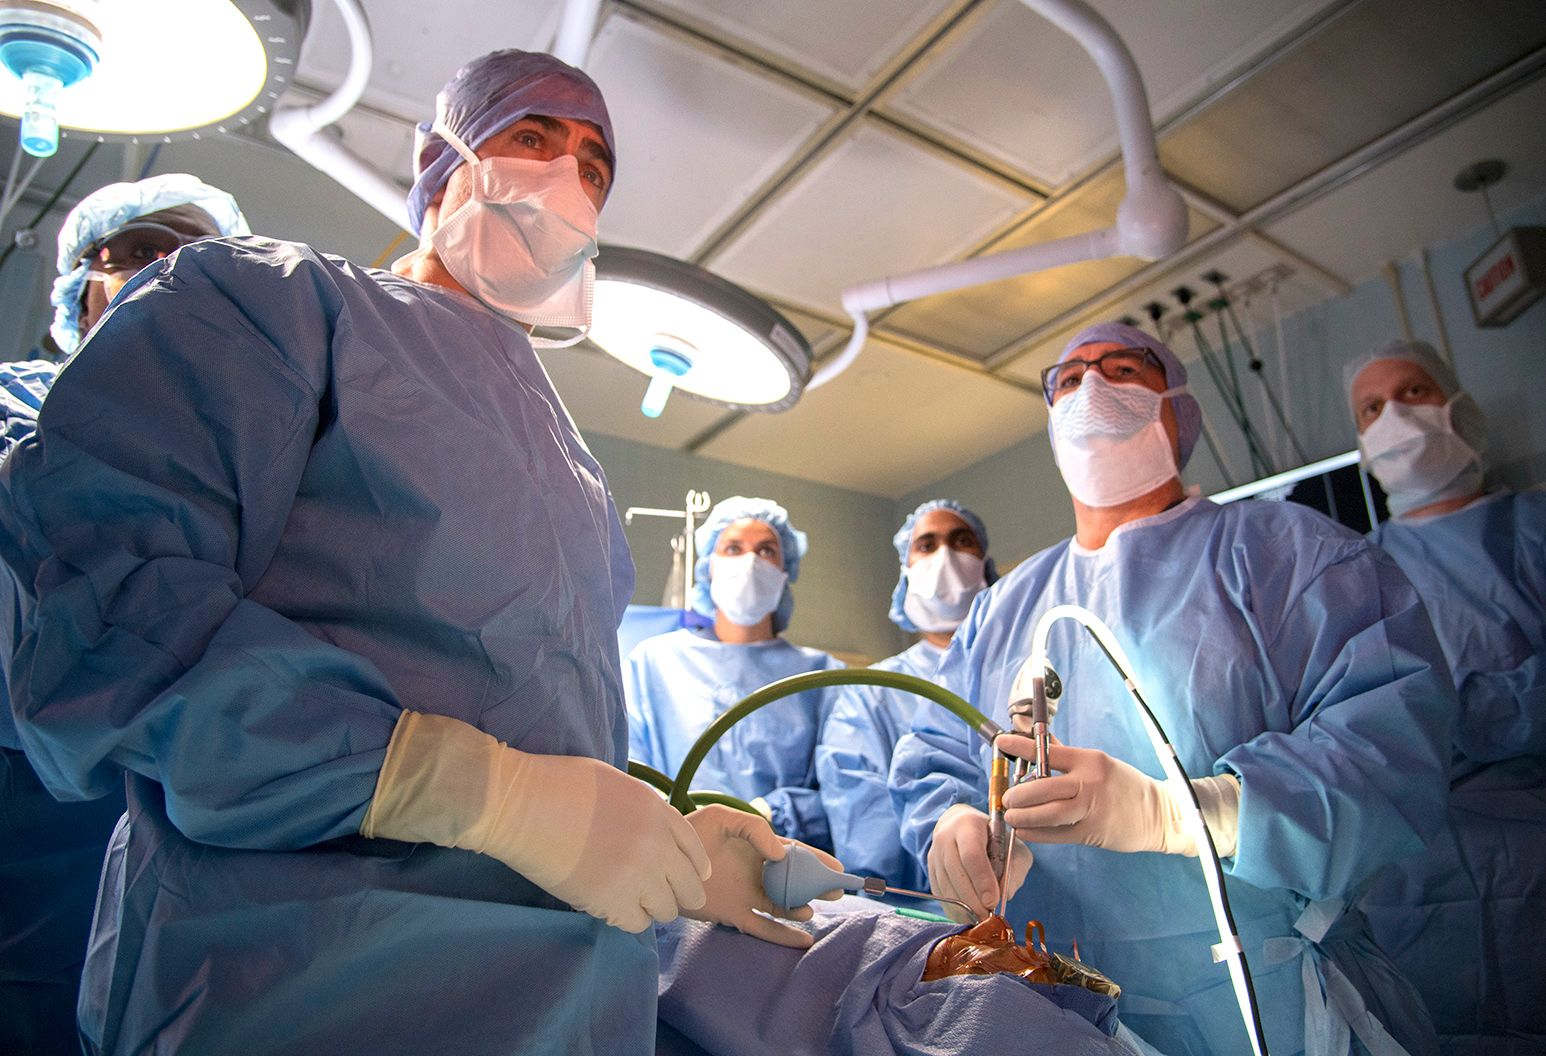 Room of surgeons performing surgery in an operating room